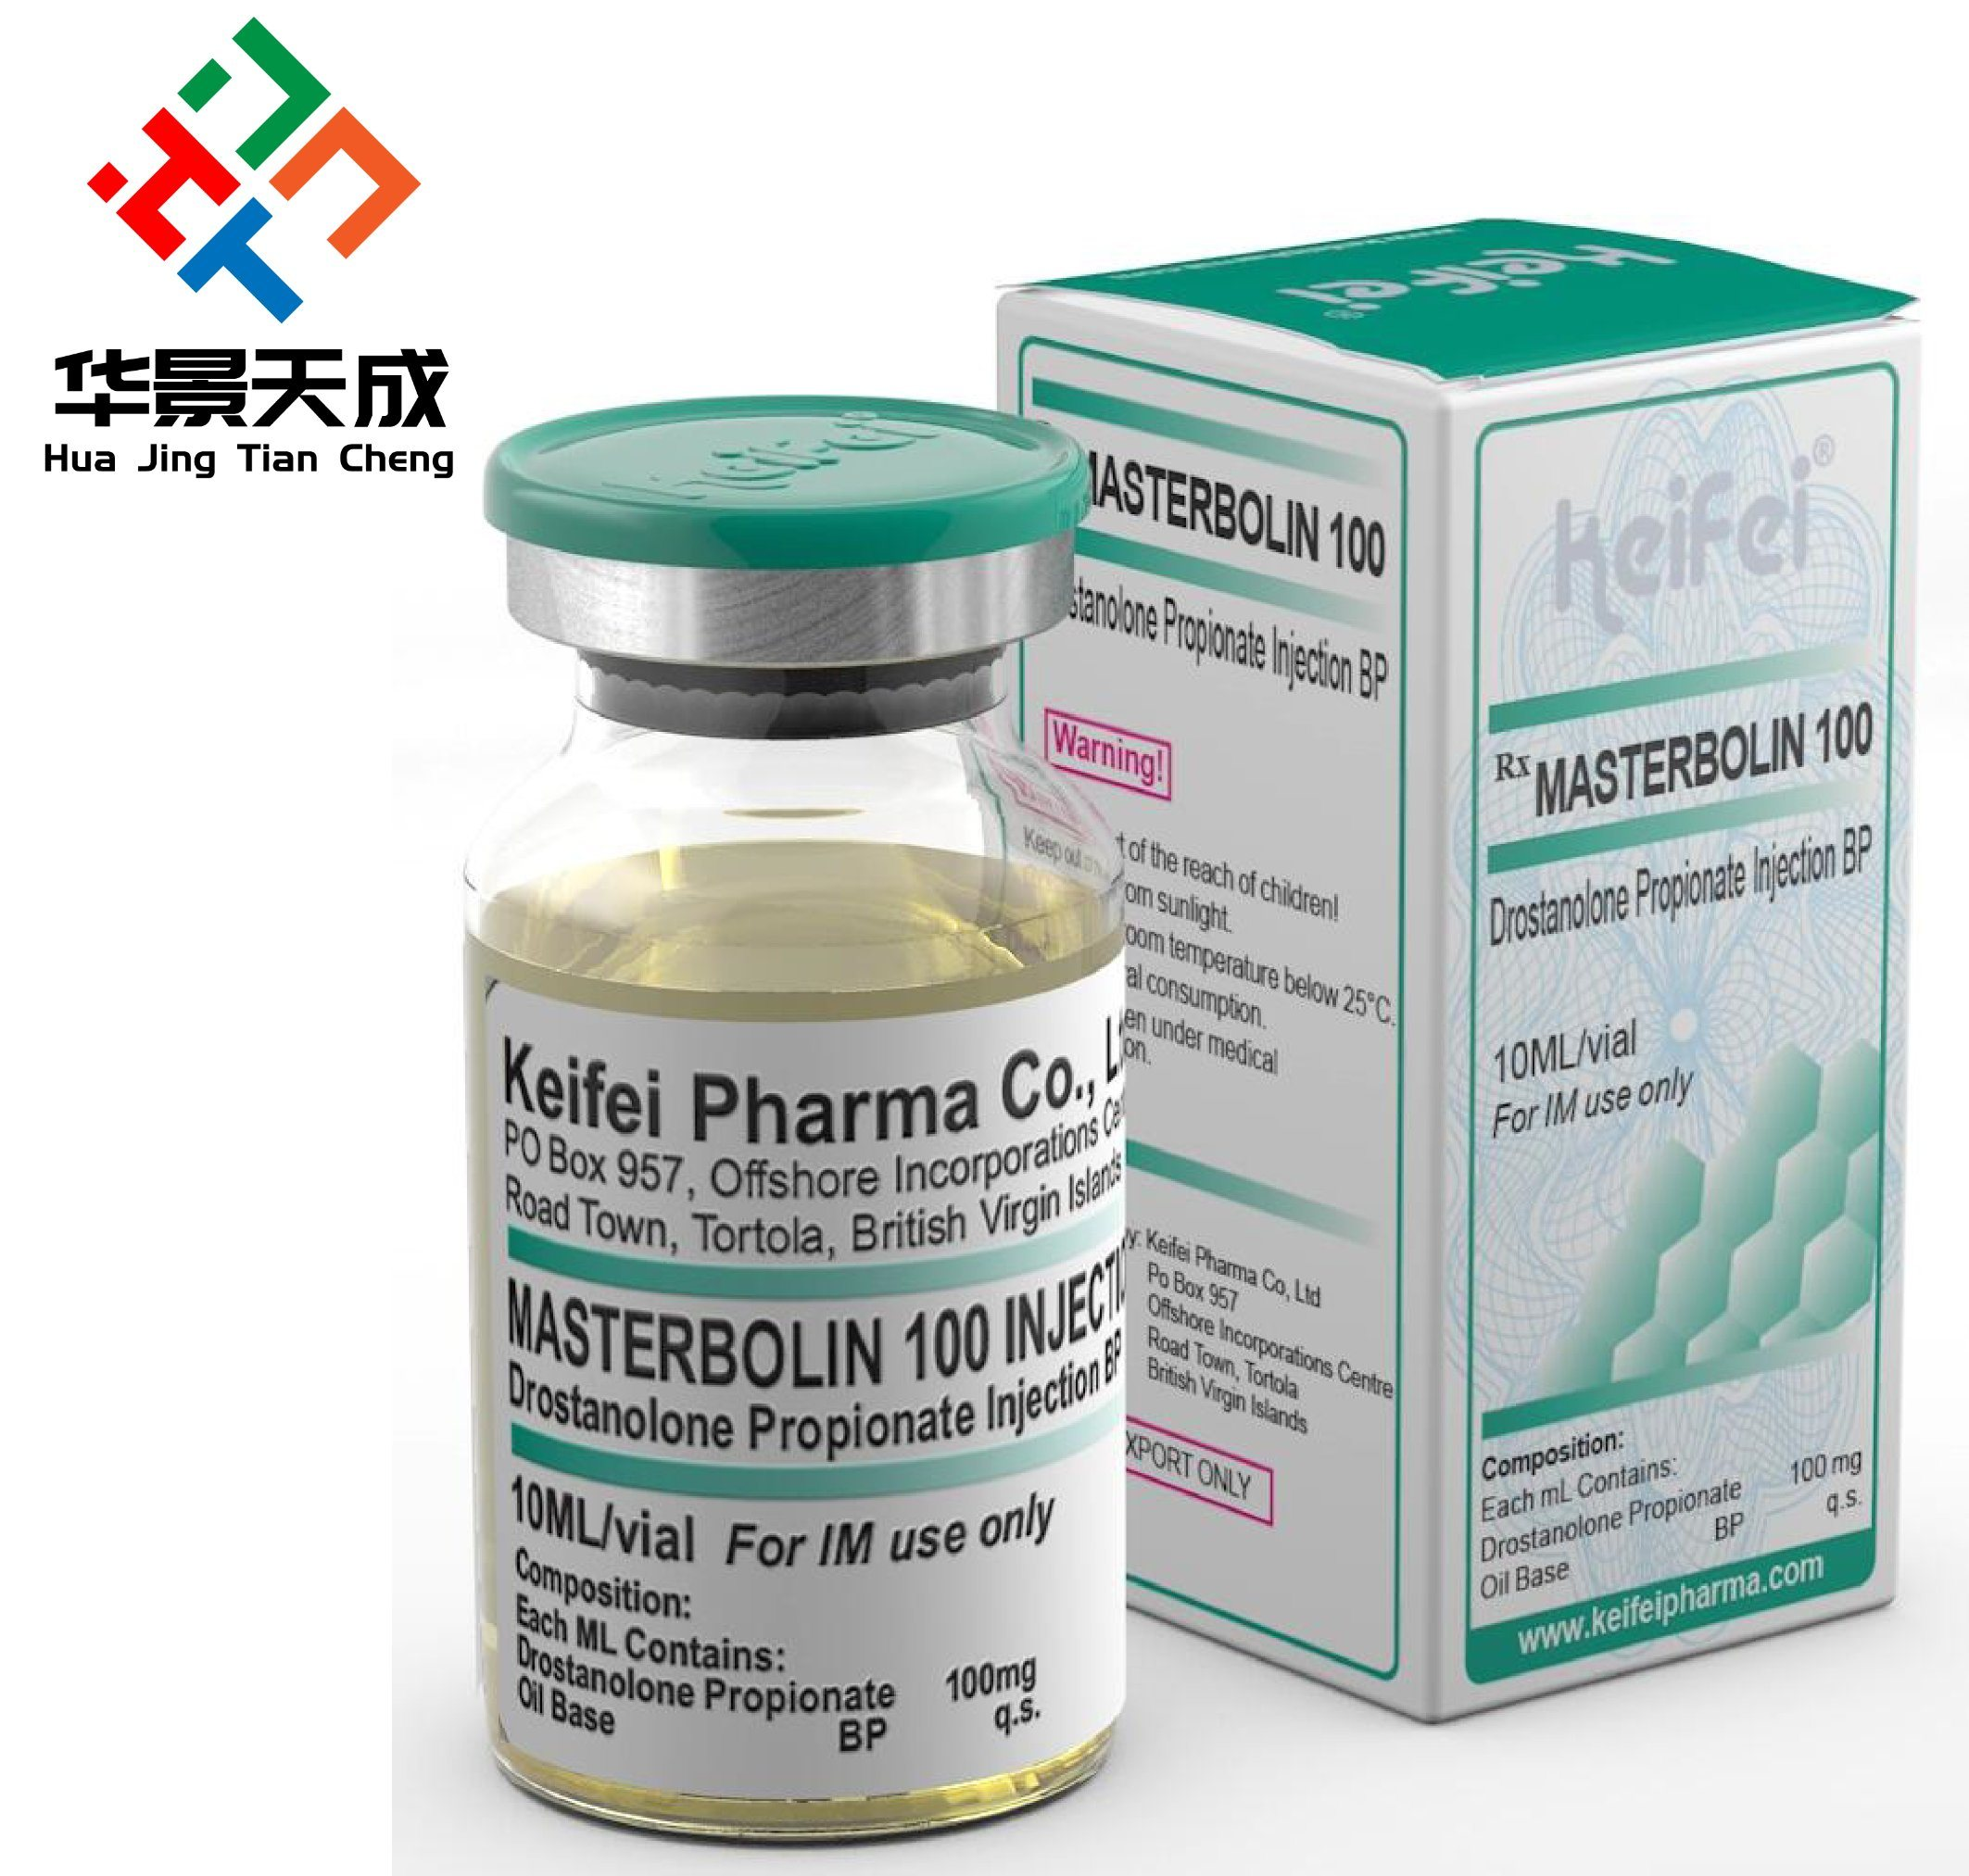 Alpha Medical Science Carton Box 10ml Vial Boxes & Drostanolone Propionate ( Masteron p) - China 10ml Vial Labels, Pharmaceutical Vial Label    Made-in-China.com